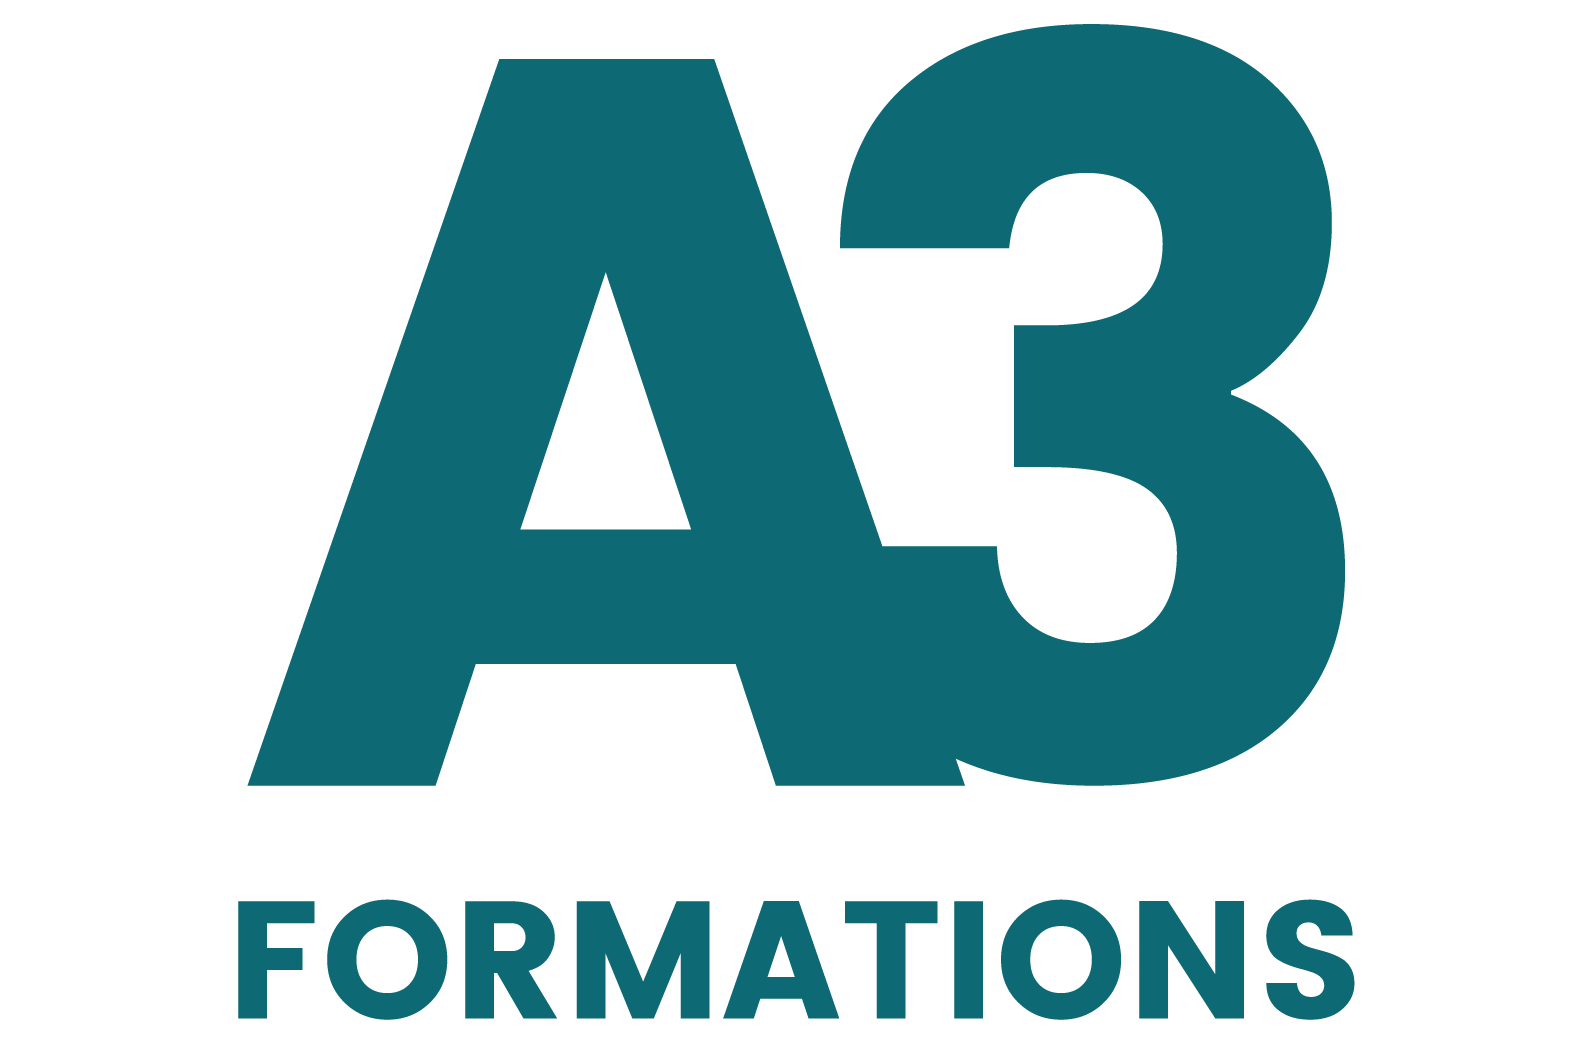 LOGO A3 FORMATIONS